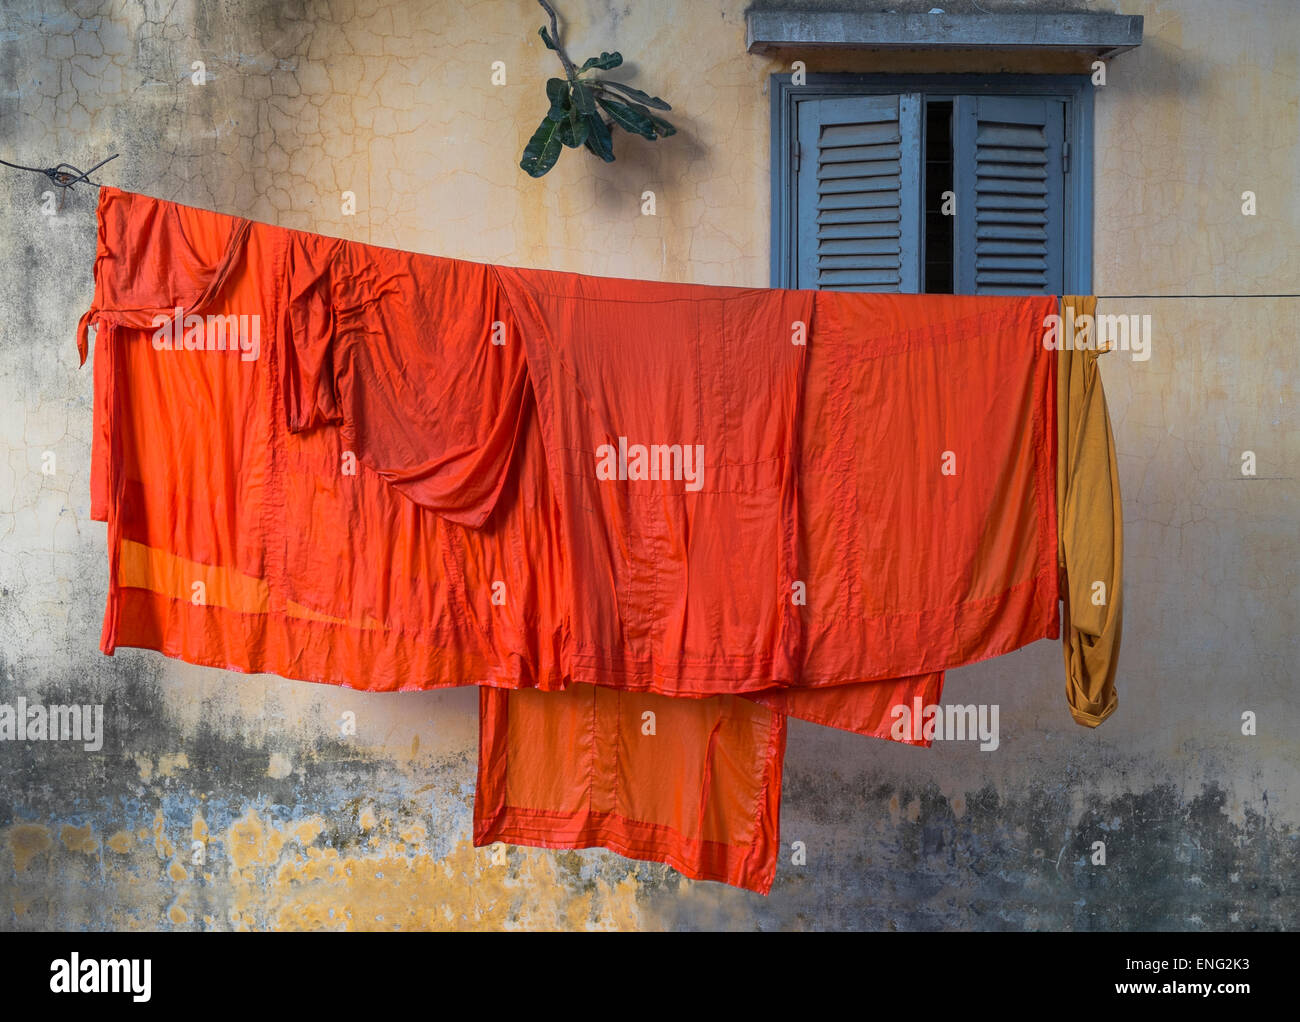 Le moine bouddhiste robes hanging on clothesline Photo Stock